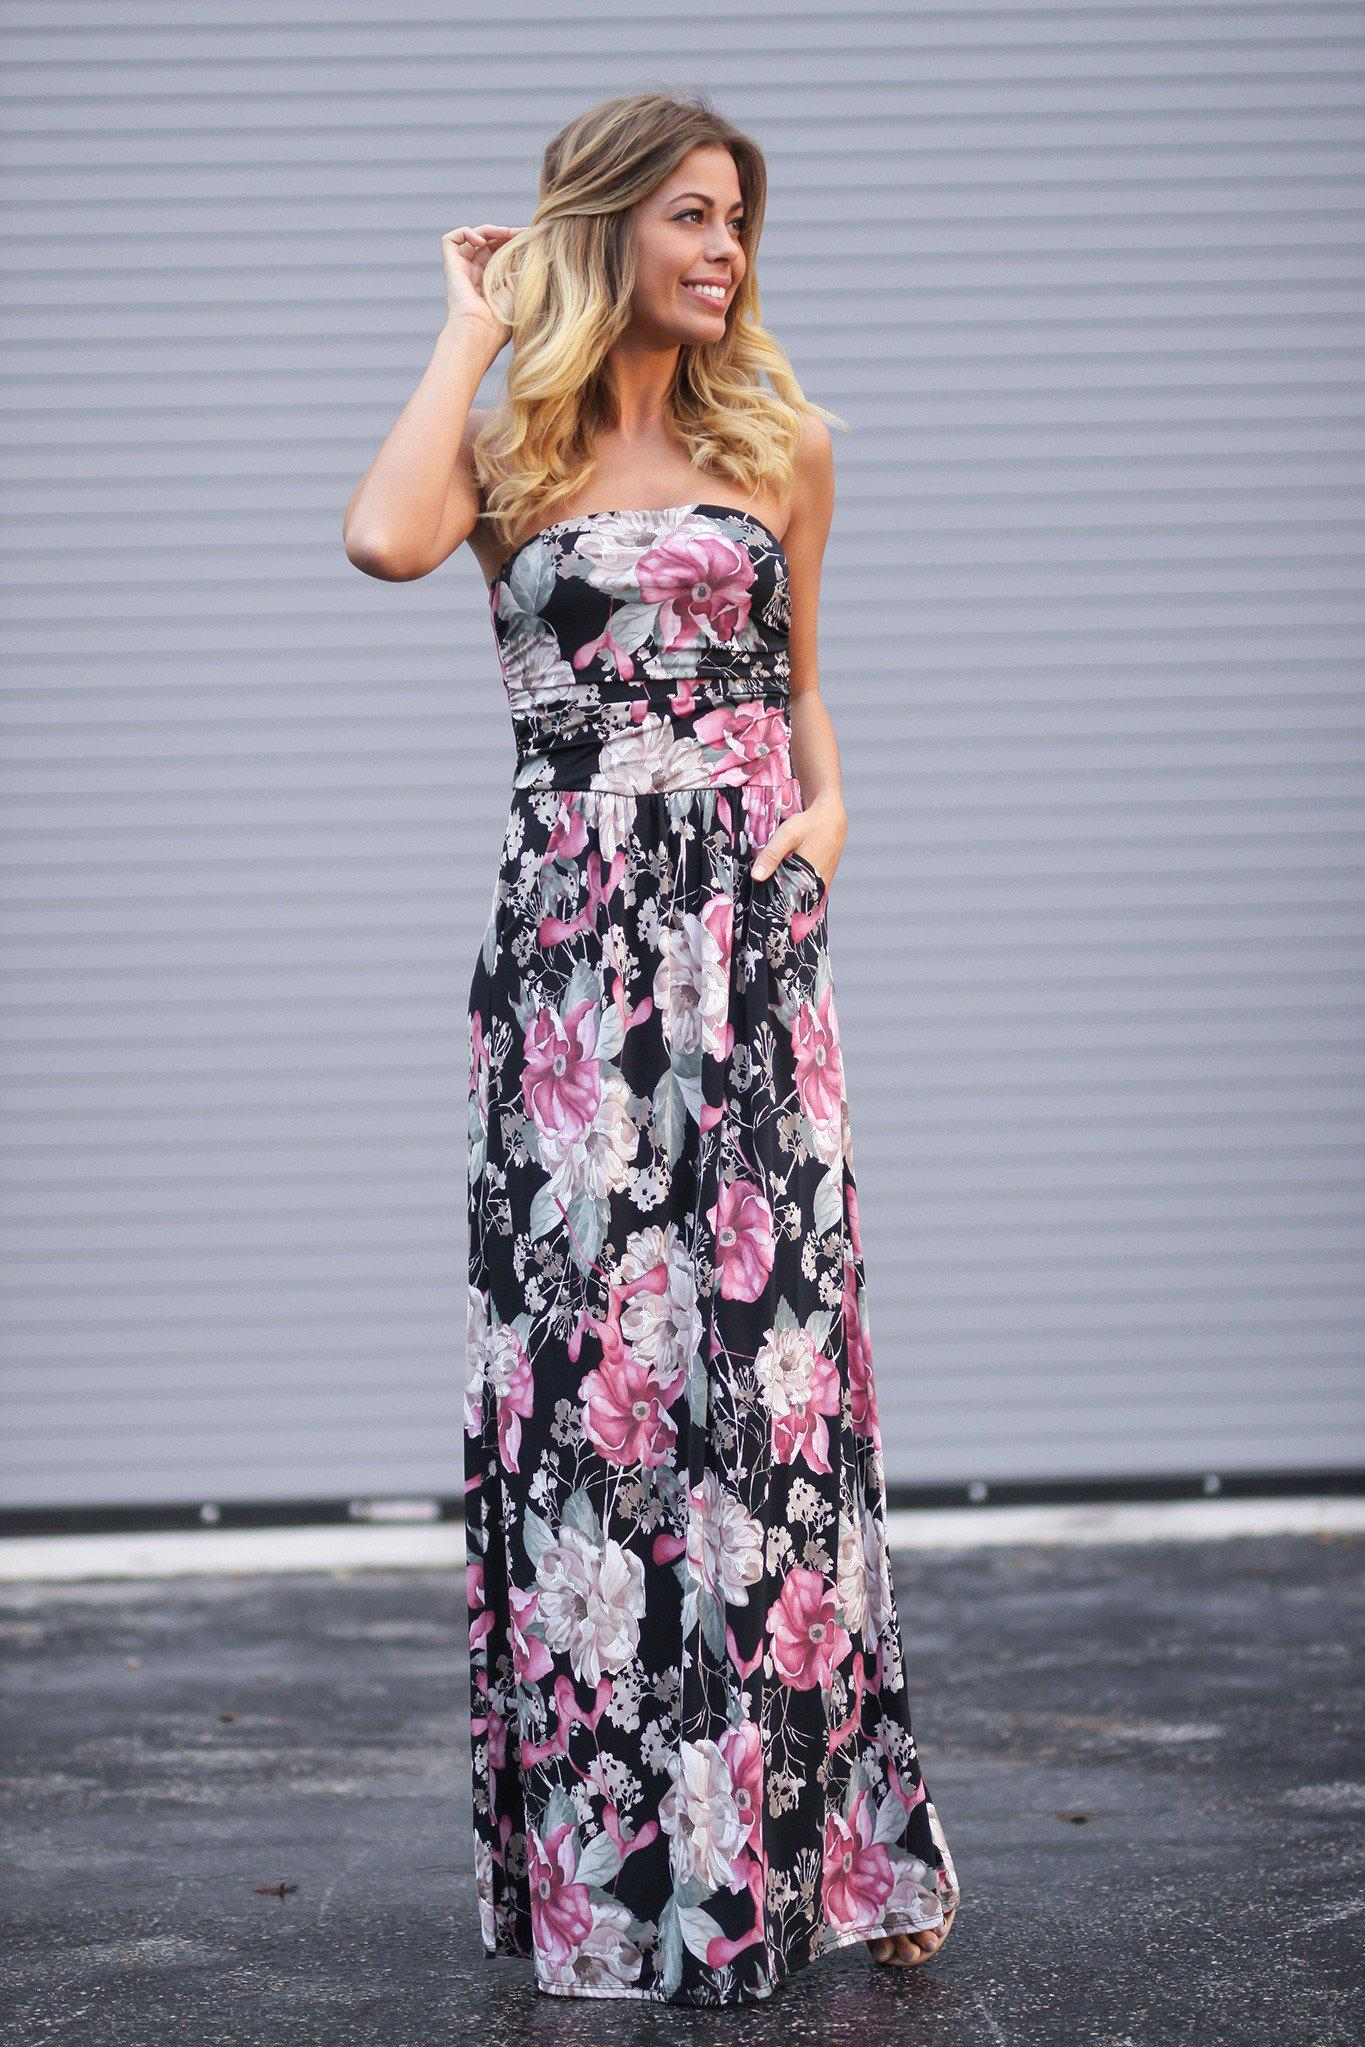 d96403a5040ed Strapless Pink and Black Floral Maxi Dress with Pockets | Maxi Dresses –  Saved by the Dress